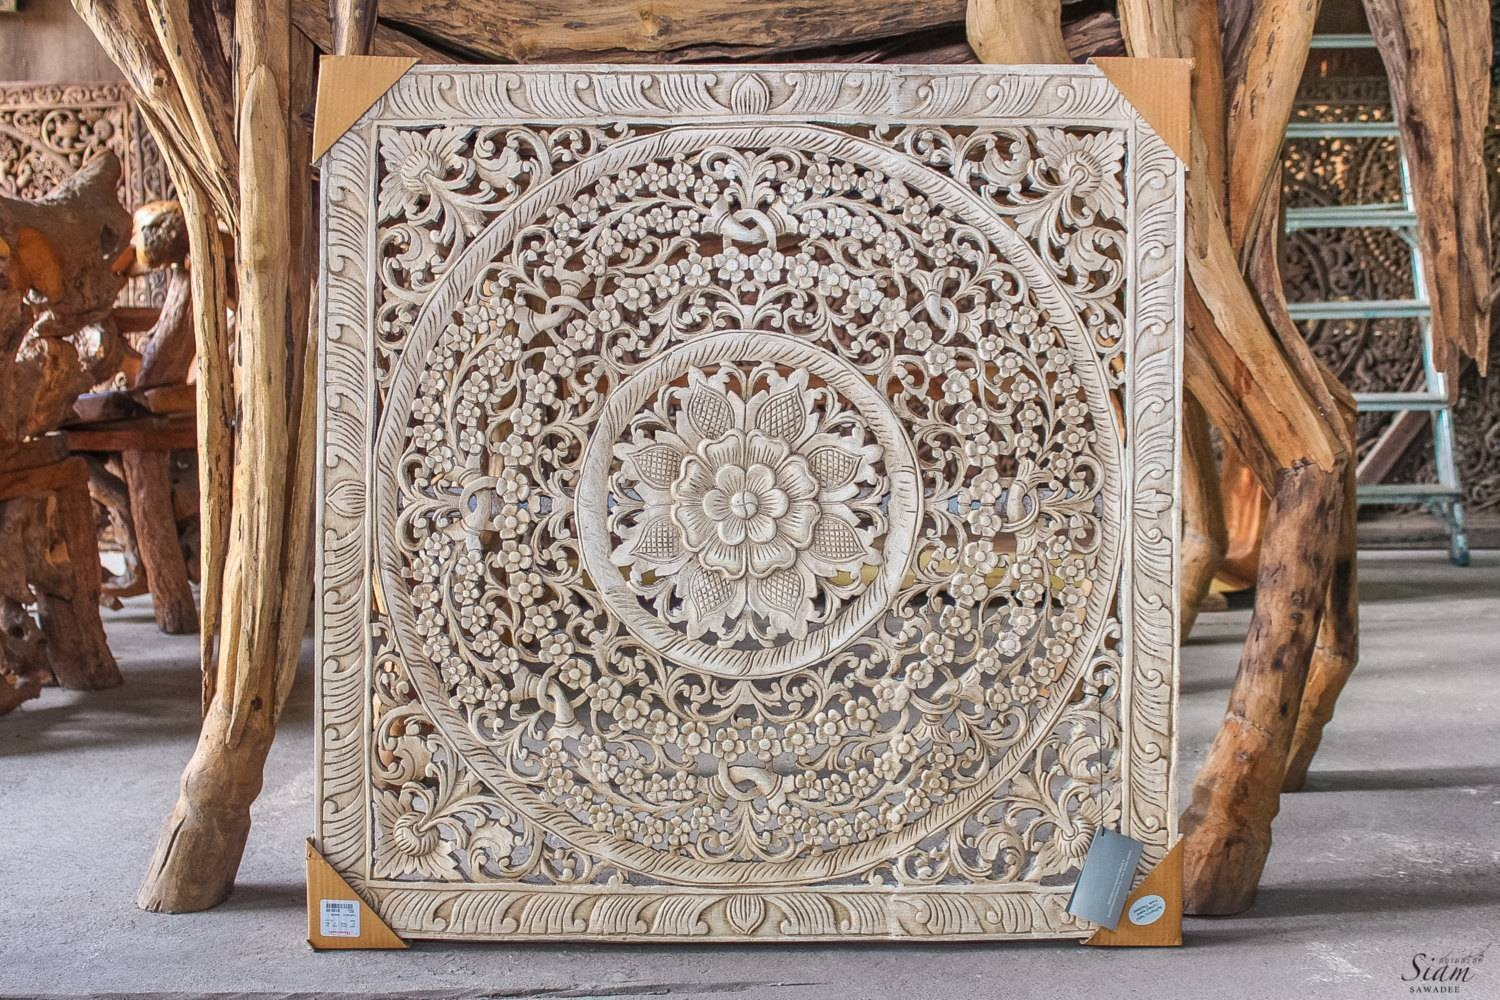 Wood Carved Wall Art | Himalayantrexplorers in Most Current Wooden Wall Art Panels